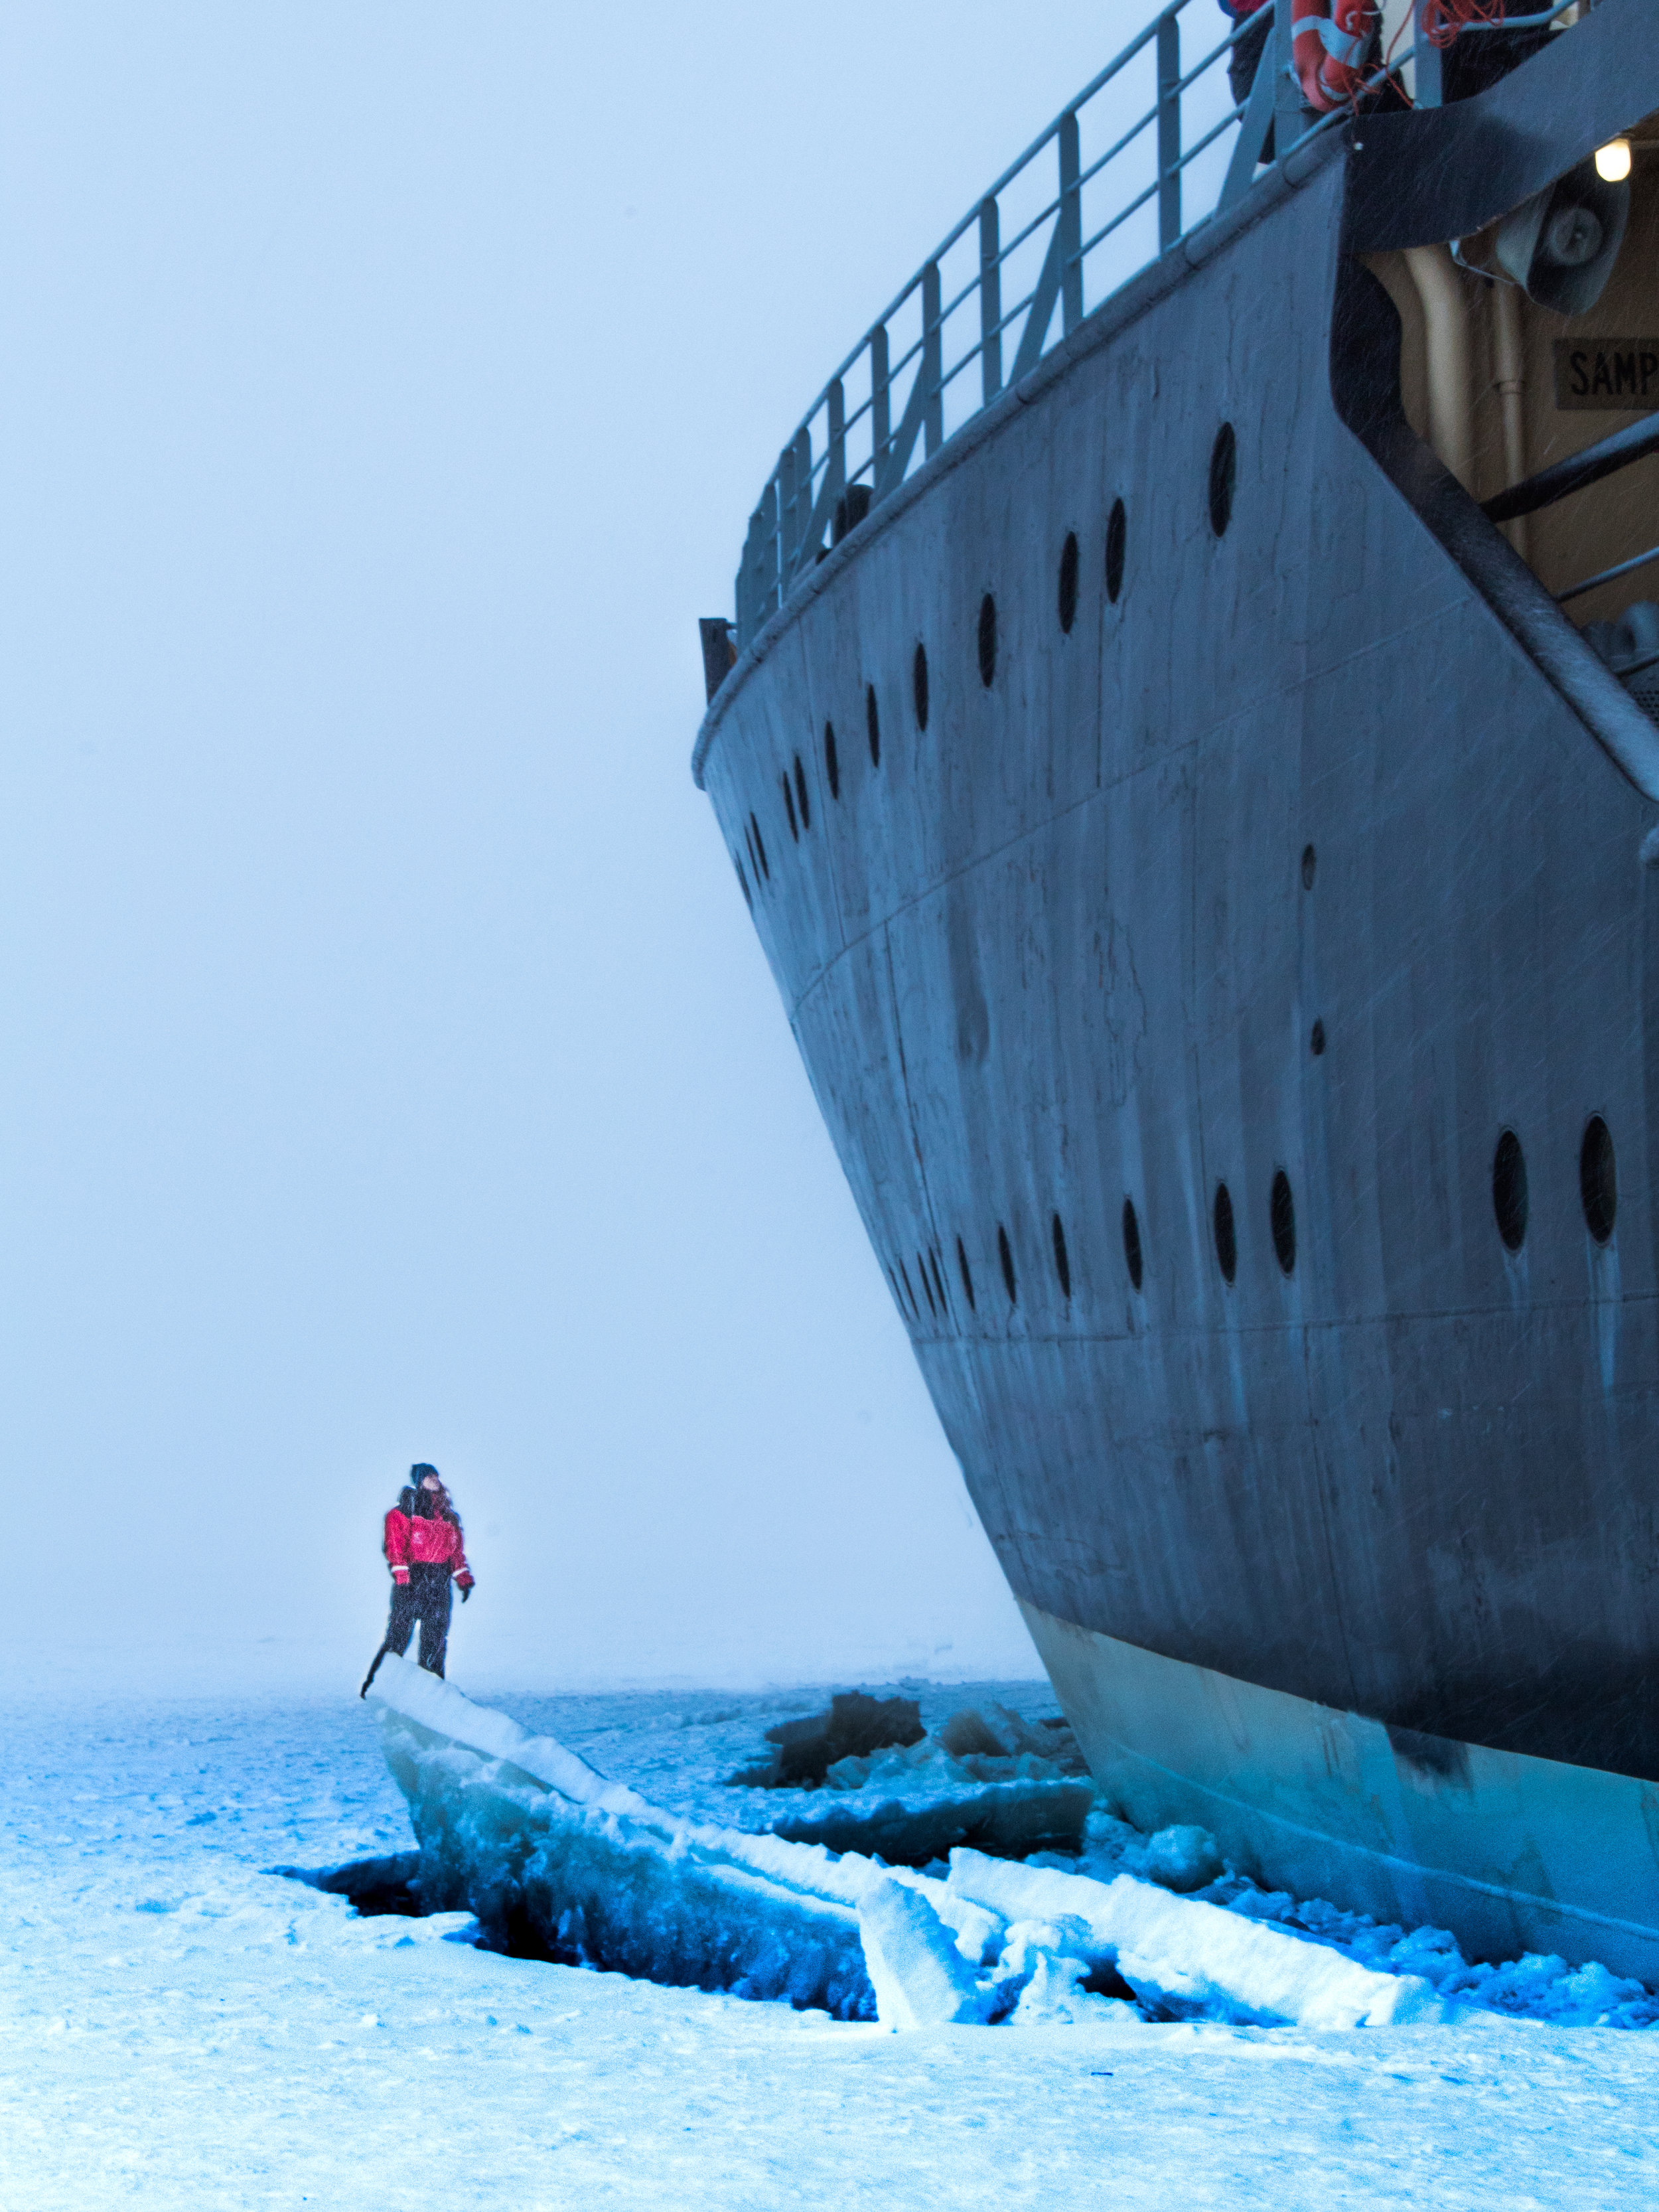 Icebreaker Sampo Cruise - Things to do in Kemi Finland - Top activities in Lapland Finland